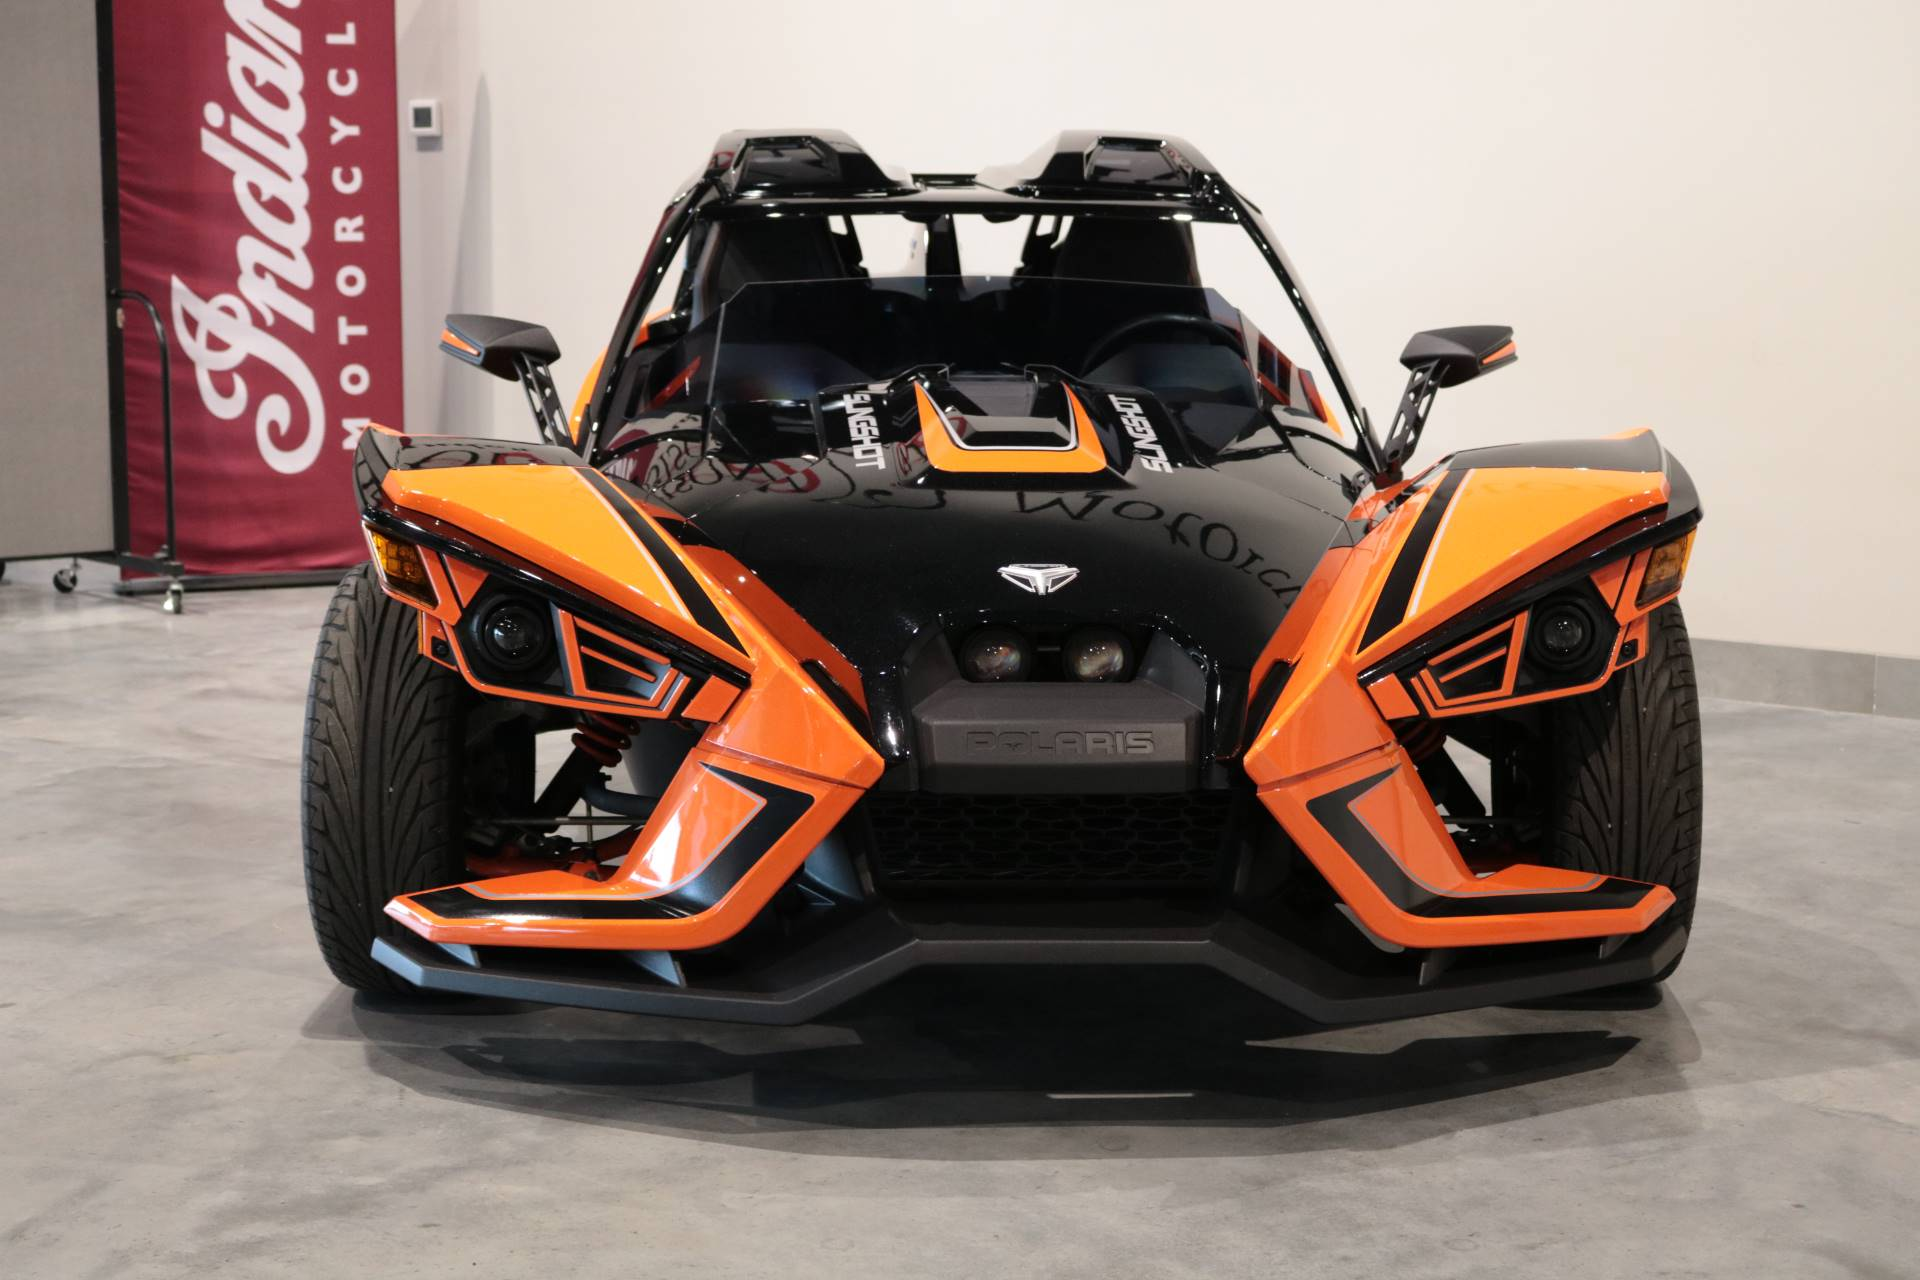 2017 Polaris Slingshot SLR in Saint Paul, Minnesota - Photo 6